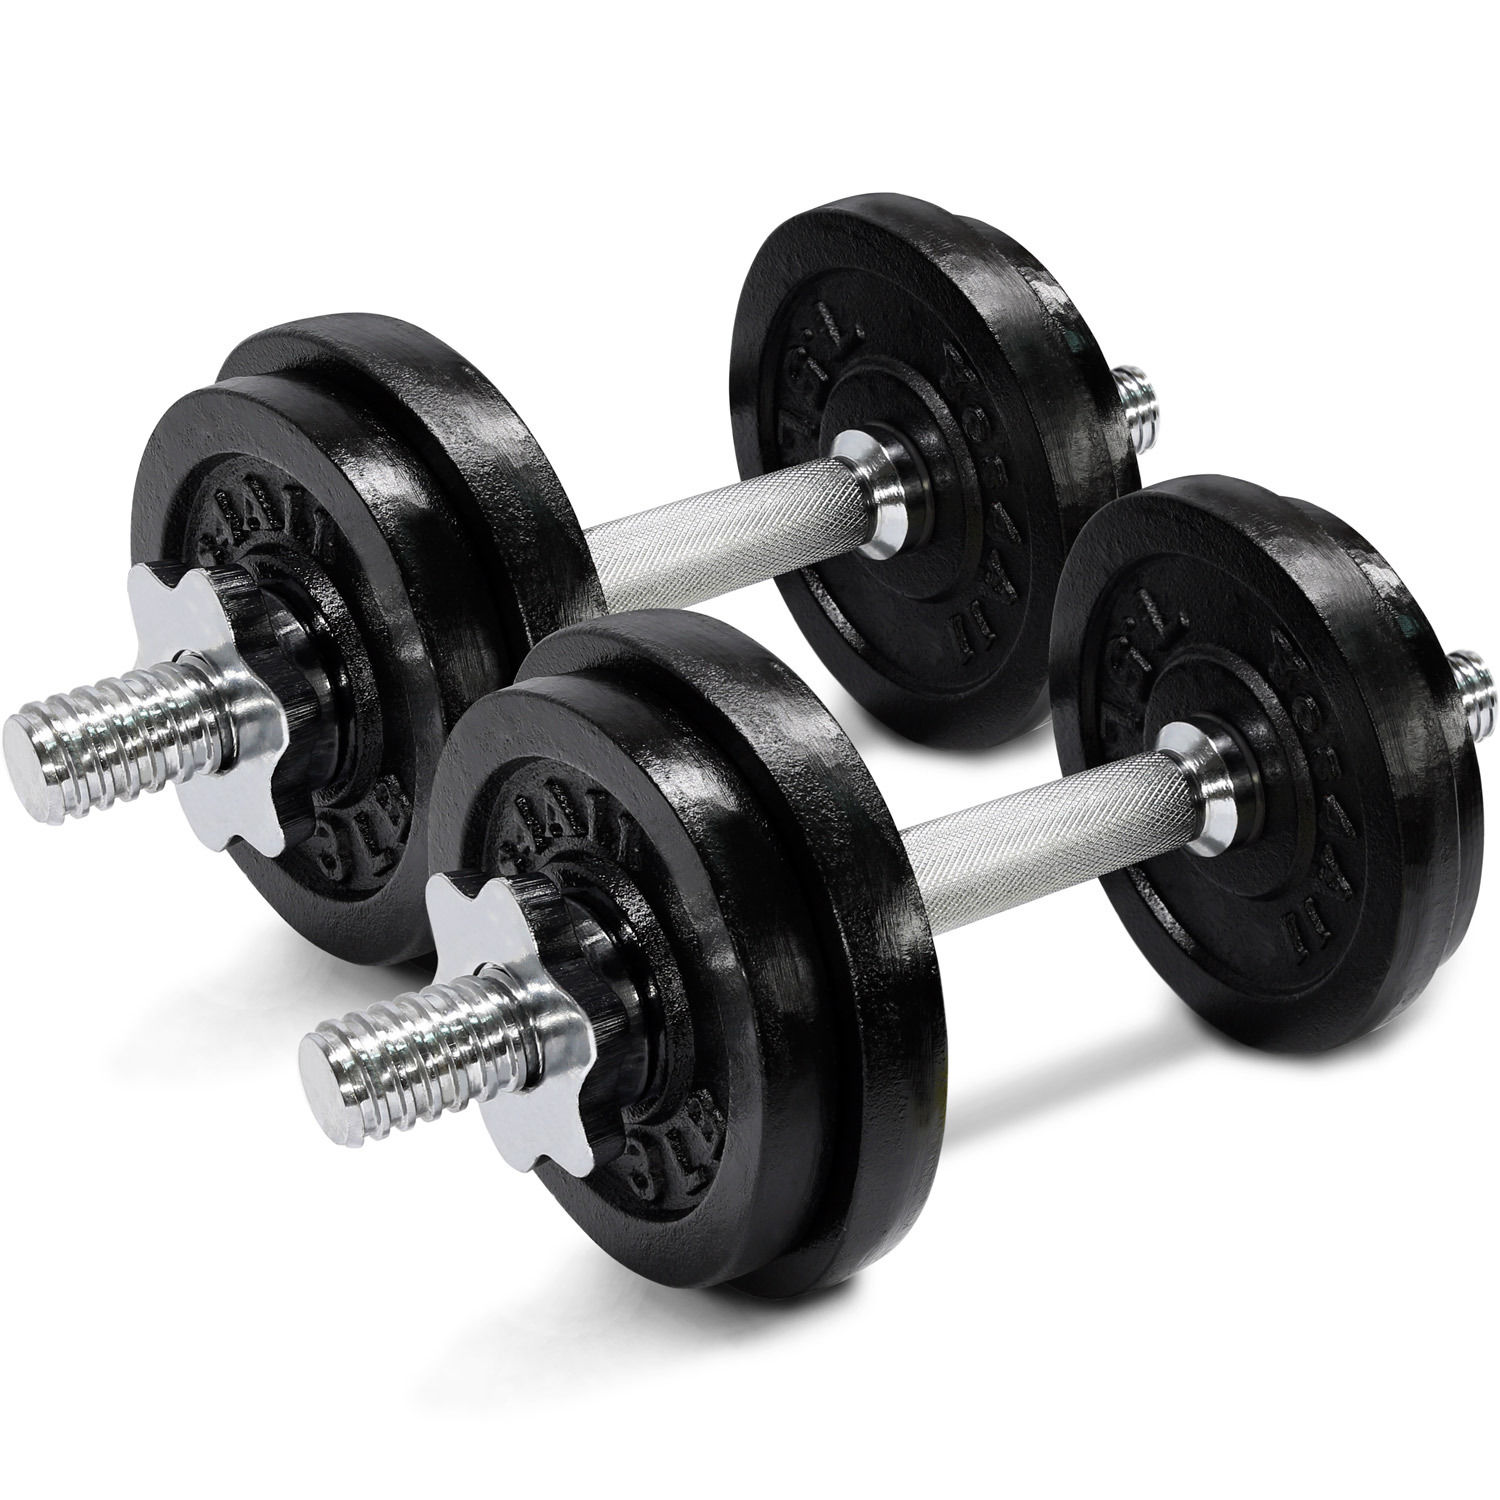 Dumbbell Set Up To 50: Yes4All 50 Lbs Adjustable Dumbbell Set Weight Fitness Gym